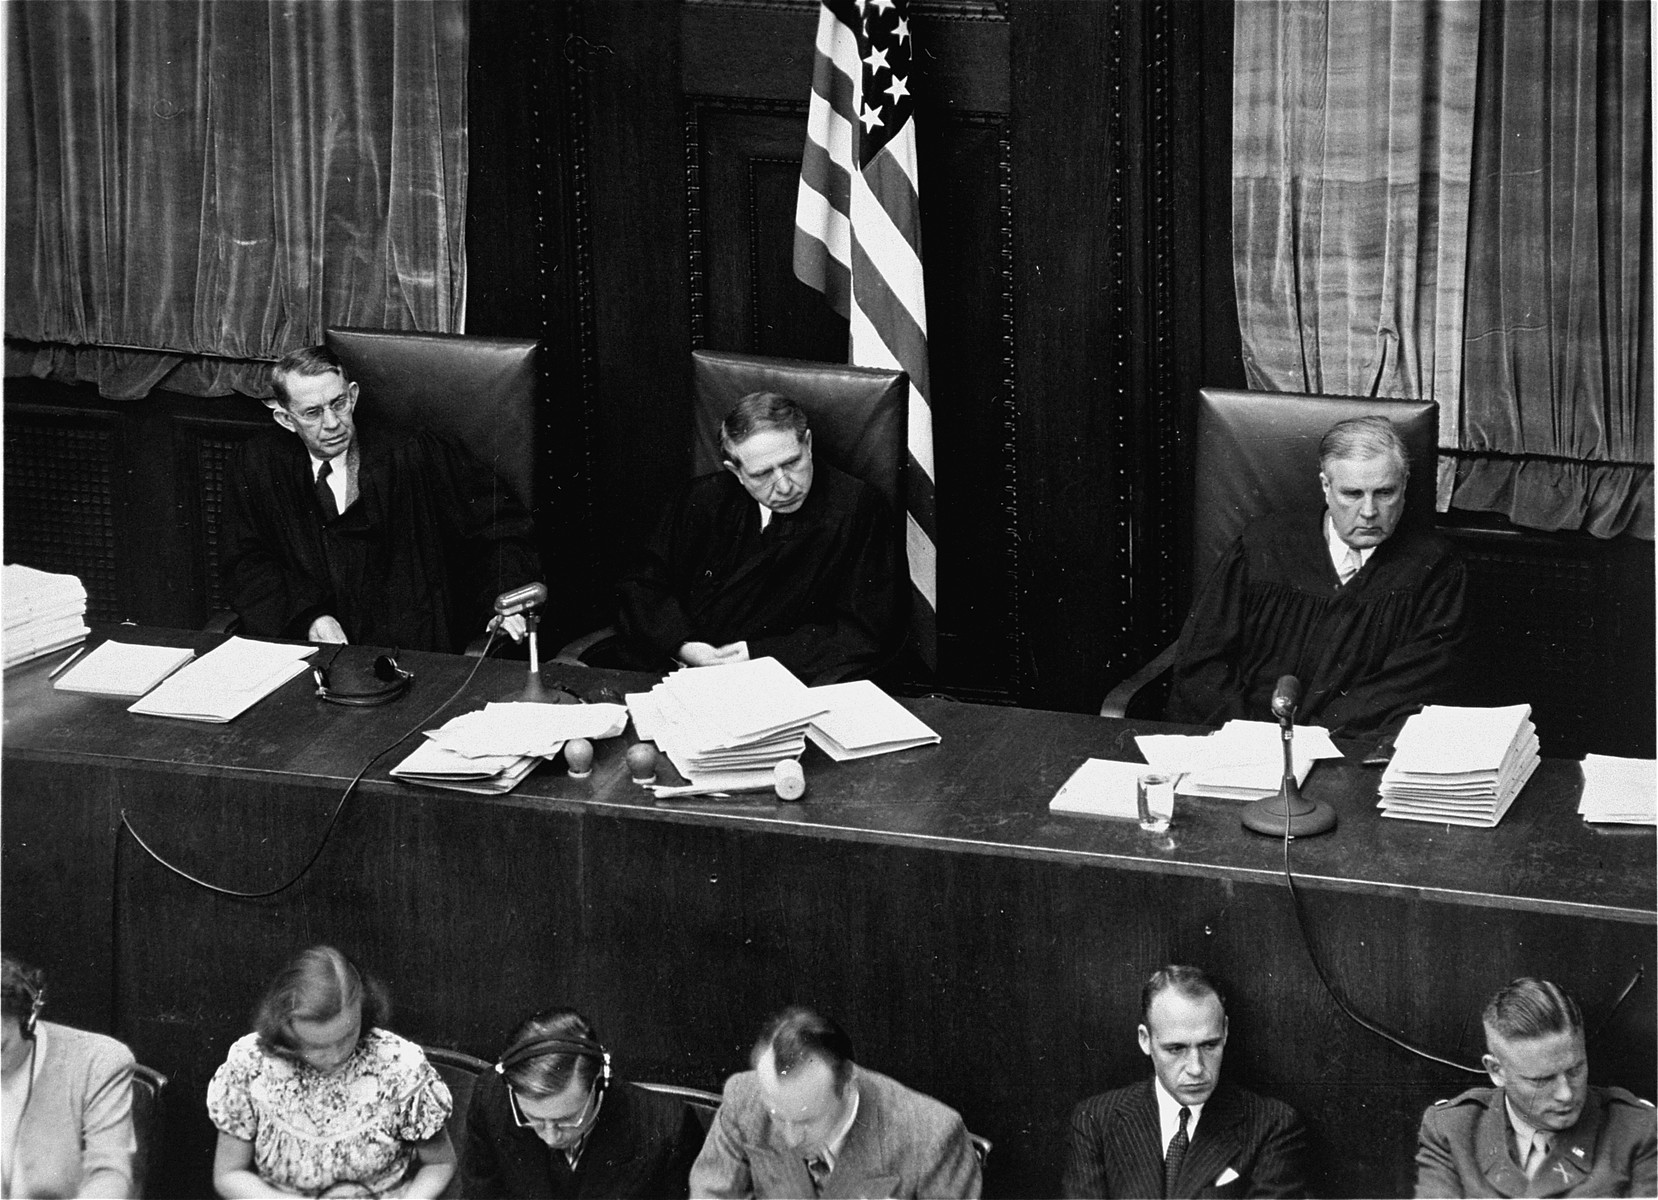 The judges of Military Tribunal II-A, listen to the Einsatzgruppen Trial.    From left to right are John J. Speight, Michael A. Musmanno, and Richard D. Dixon.